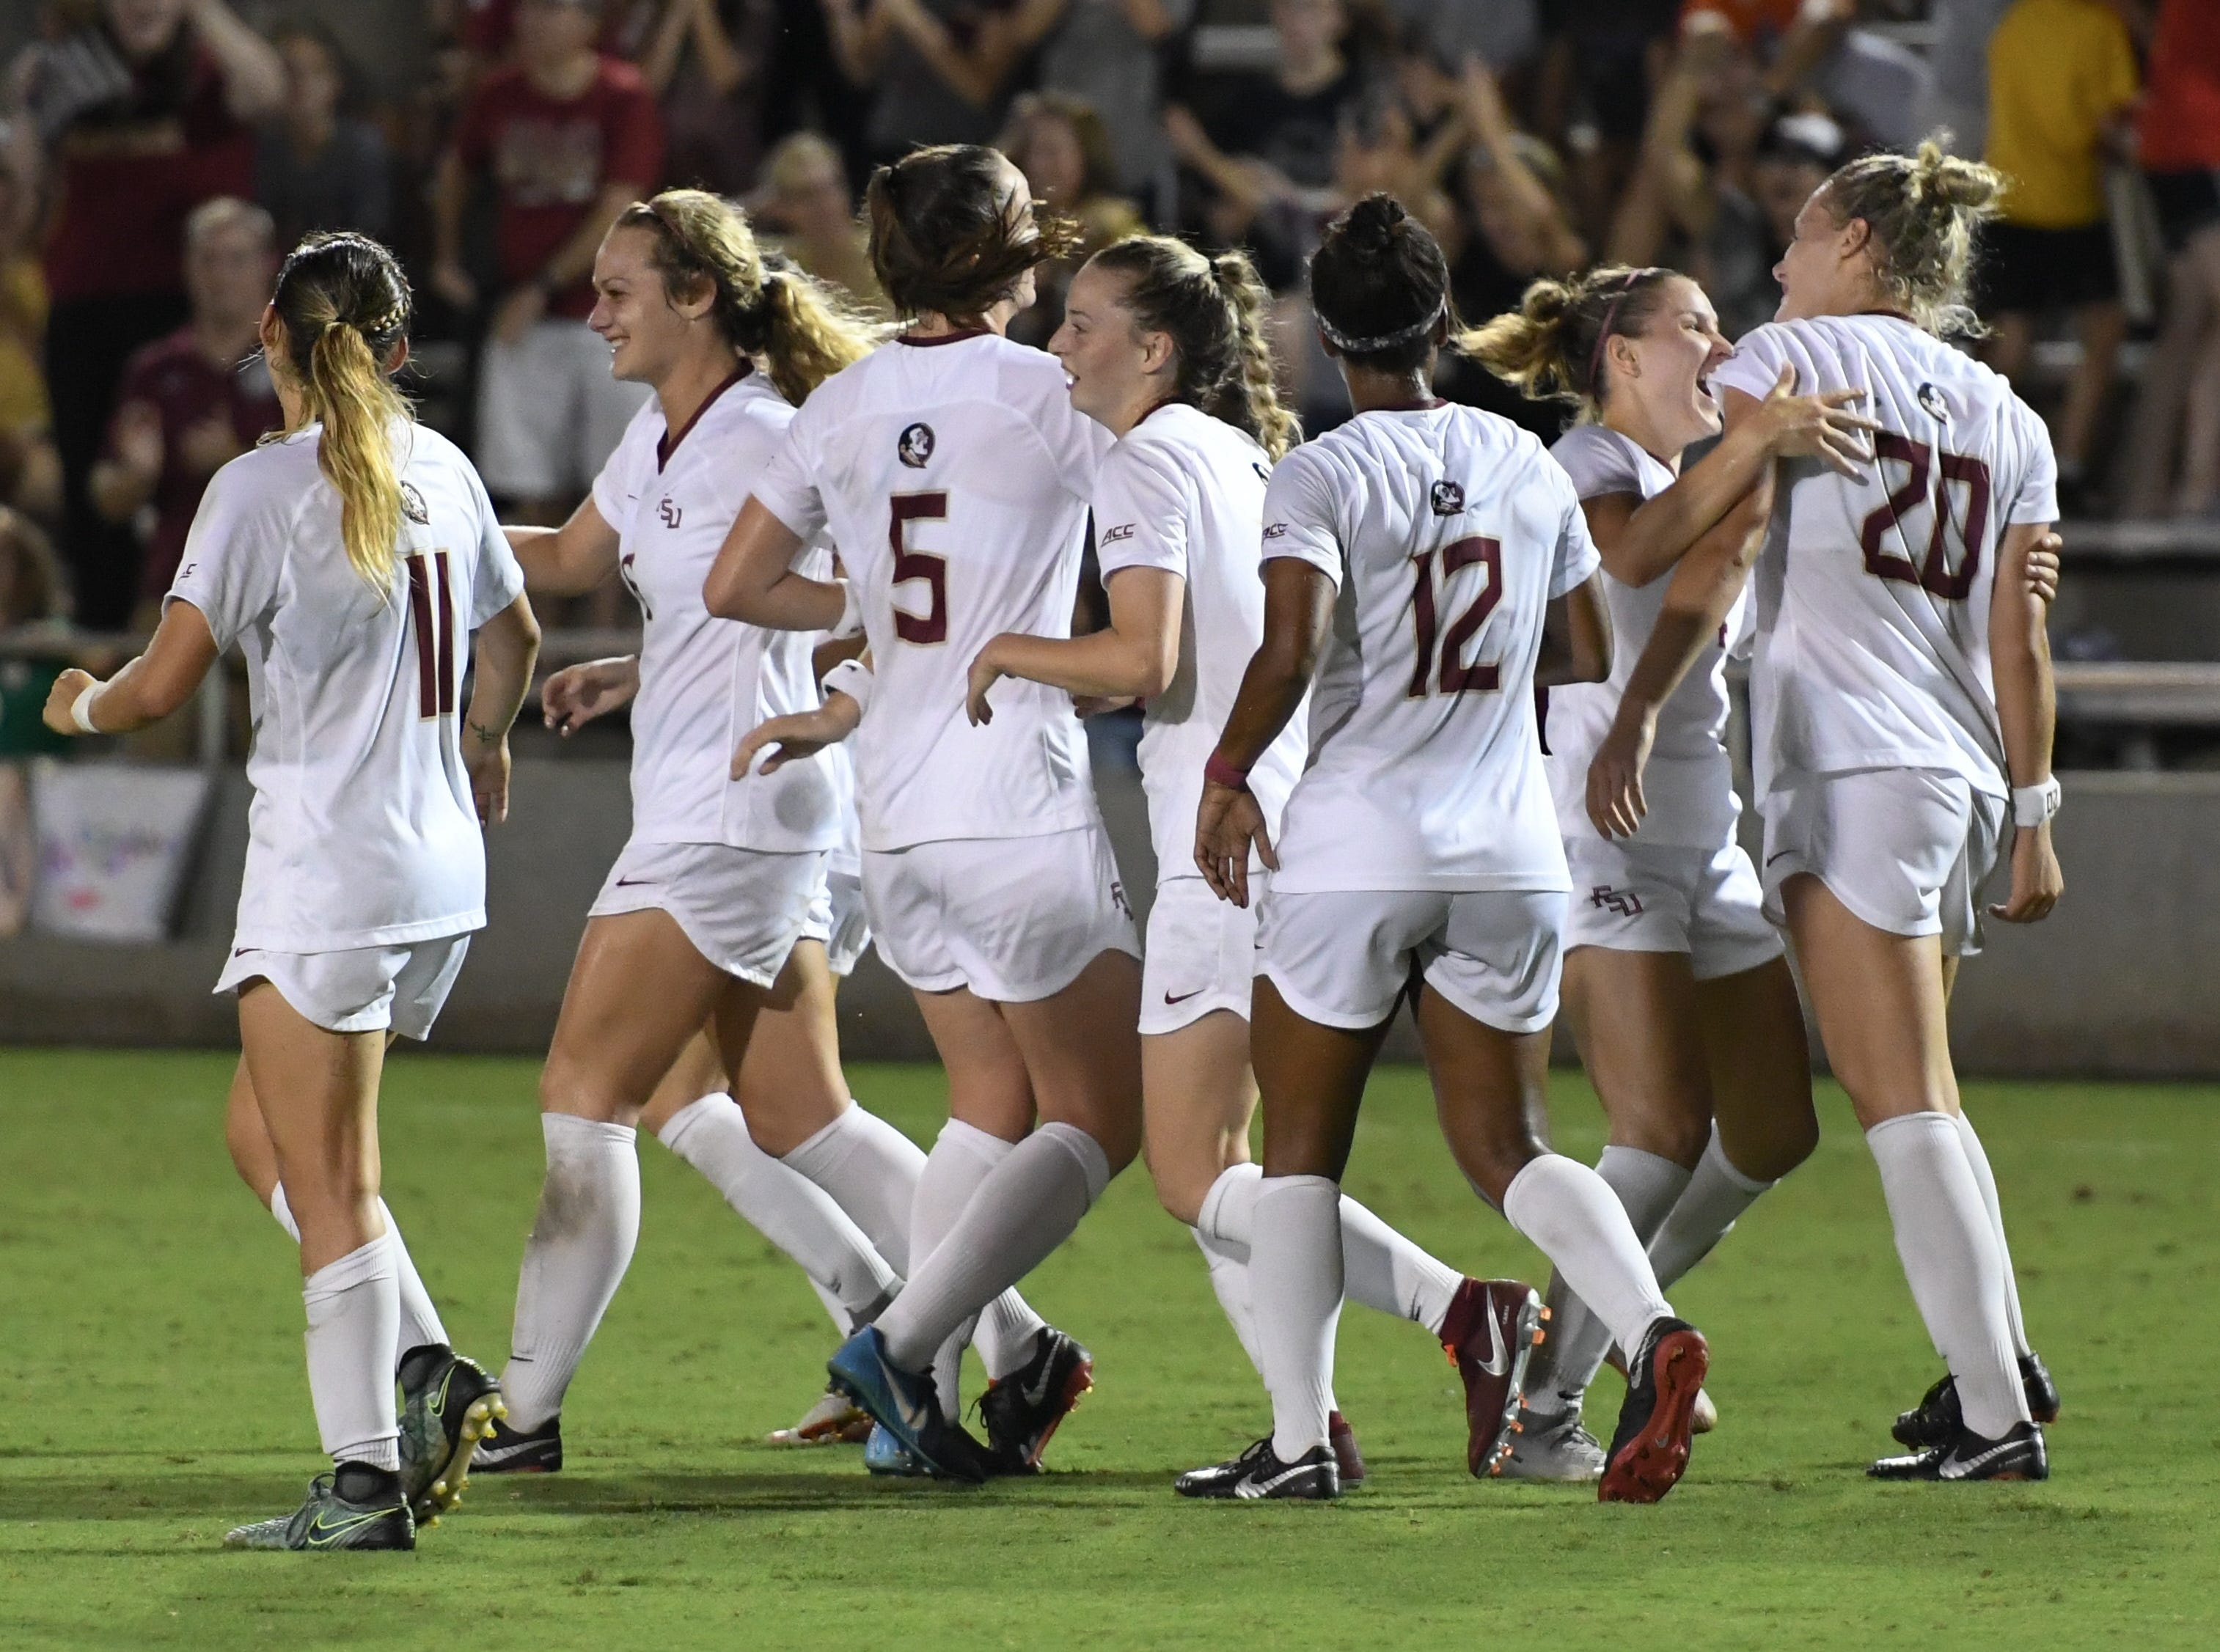 FSU redshirt sophomore forward Kristen McFarland (20) celebrating with her teammates after she scored FSU's winning goal during the second half of FSU's game against Florida on Friday night at the Seminole Soccer Complex.